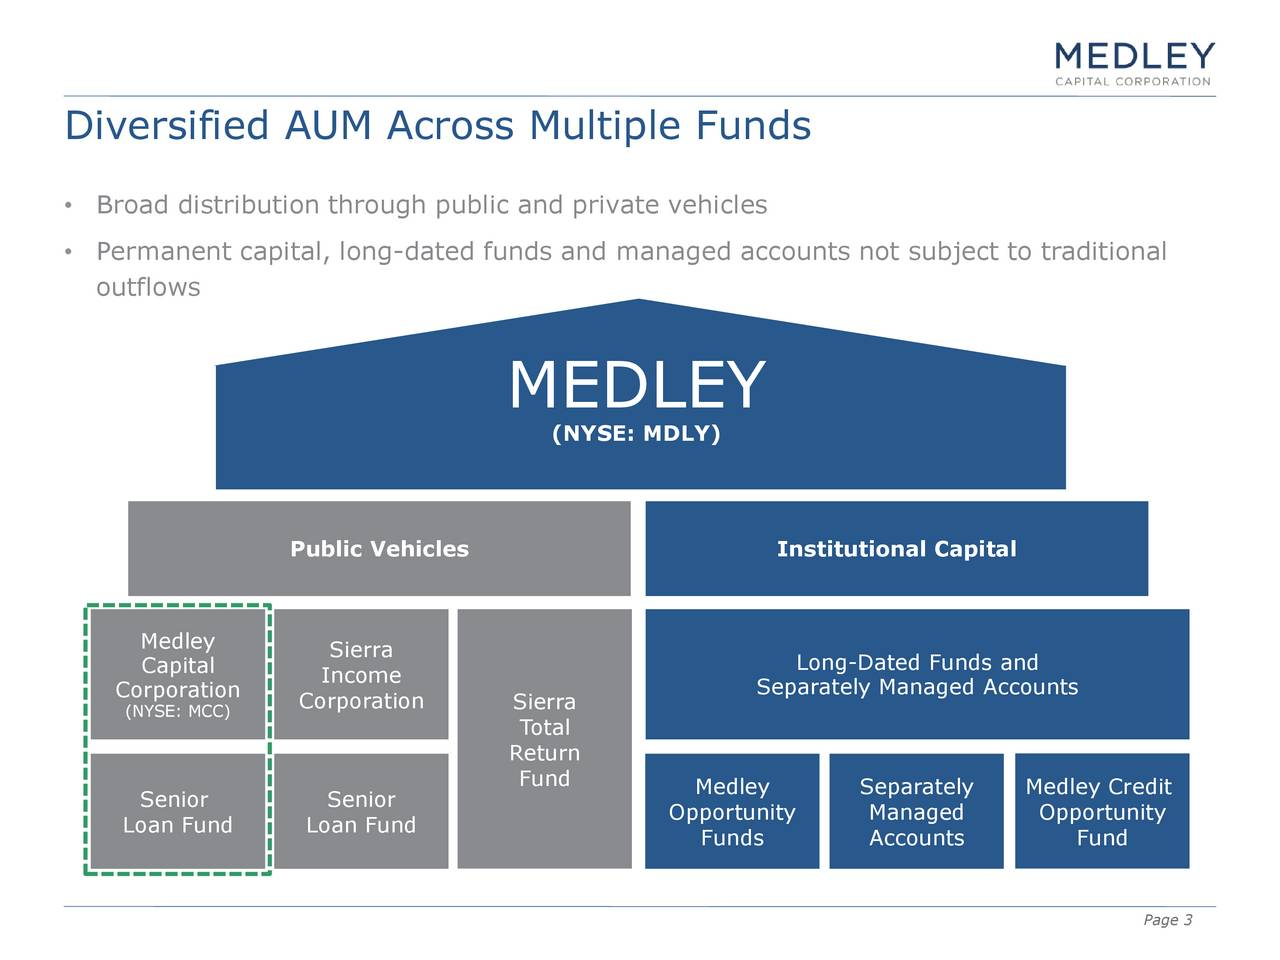 Broad distribution through public and private vehicles Permanent capital, long-dated funds and managed accounts not subject to traditional outflows MEDLEY (NYSE: MDLY) Public Vehicles Institutional Capital Medley Sierra Capital Income Long-Dated Funds and Corporation Corporation Sierra Separately Managed Accounts (NYSE: MCC) Total Return Senior Senior Fund Medley Separately Medley Credit Opportunity Managed Opportunity Loan Fund Loan Fund Funds Accounts Fund Page 3